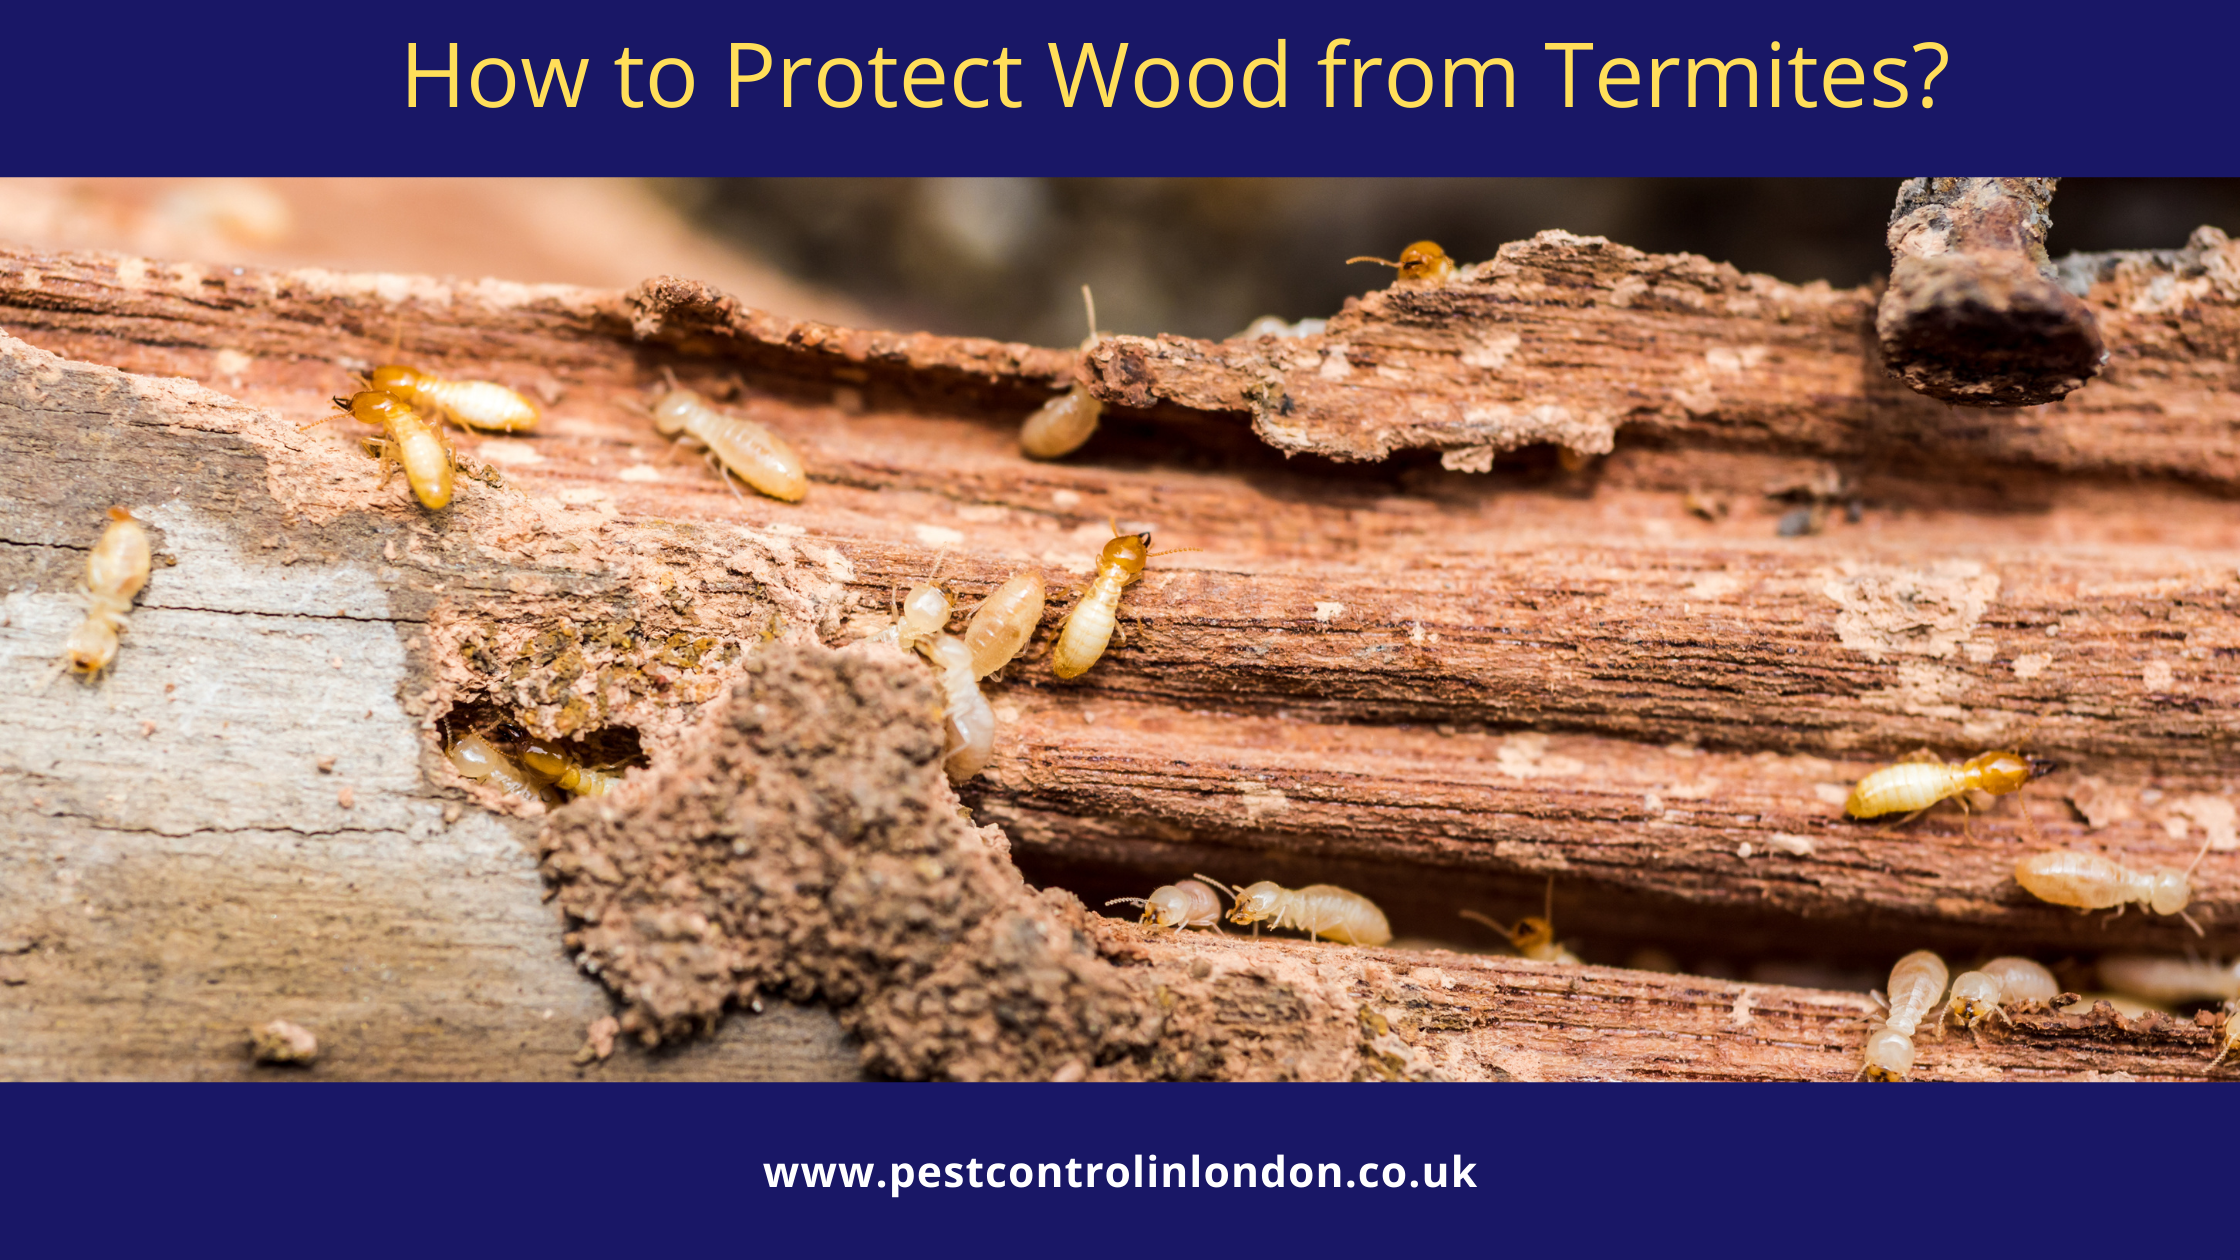 How to Protect Wood from Termites